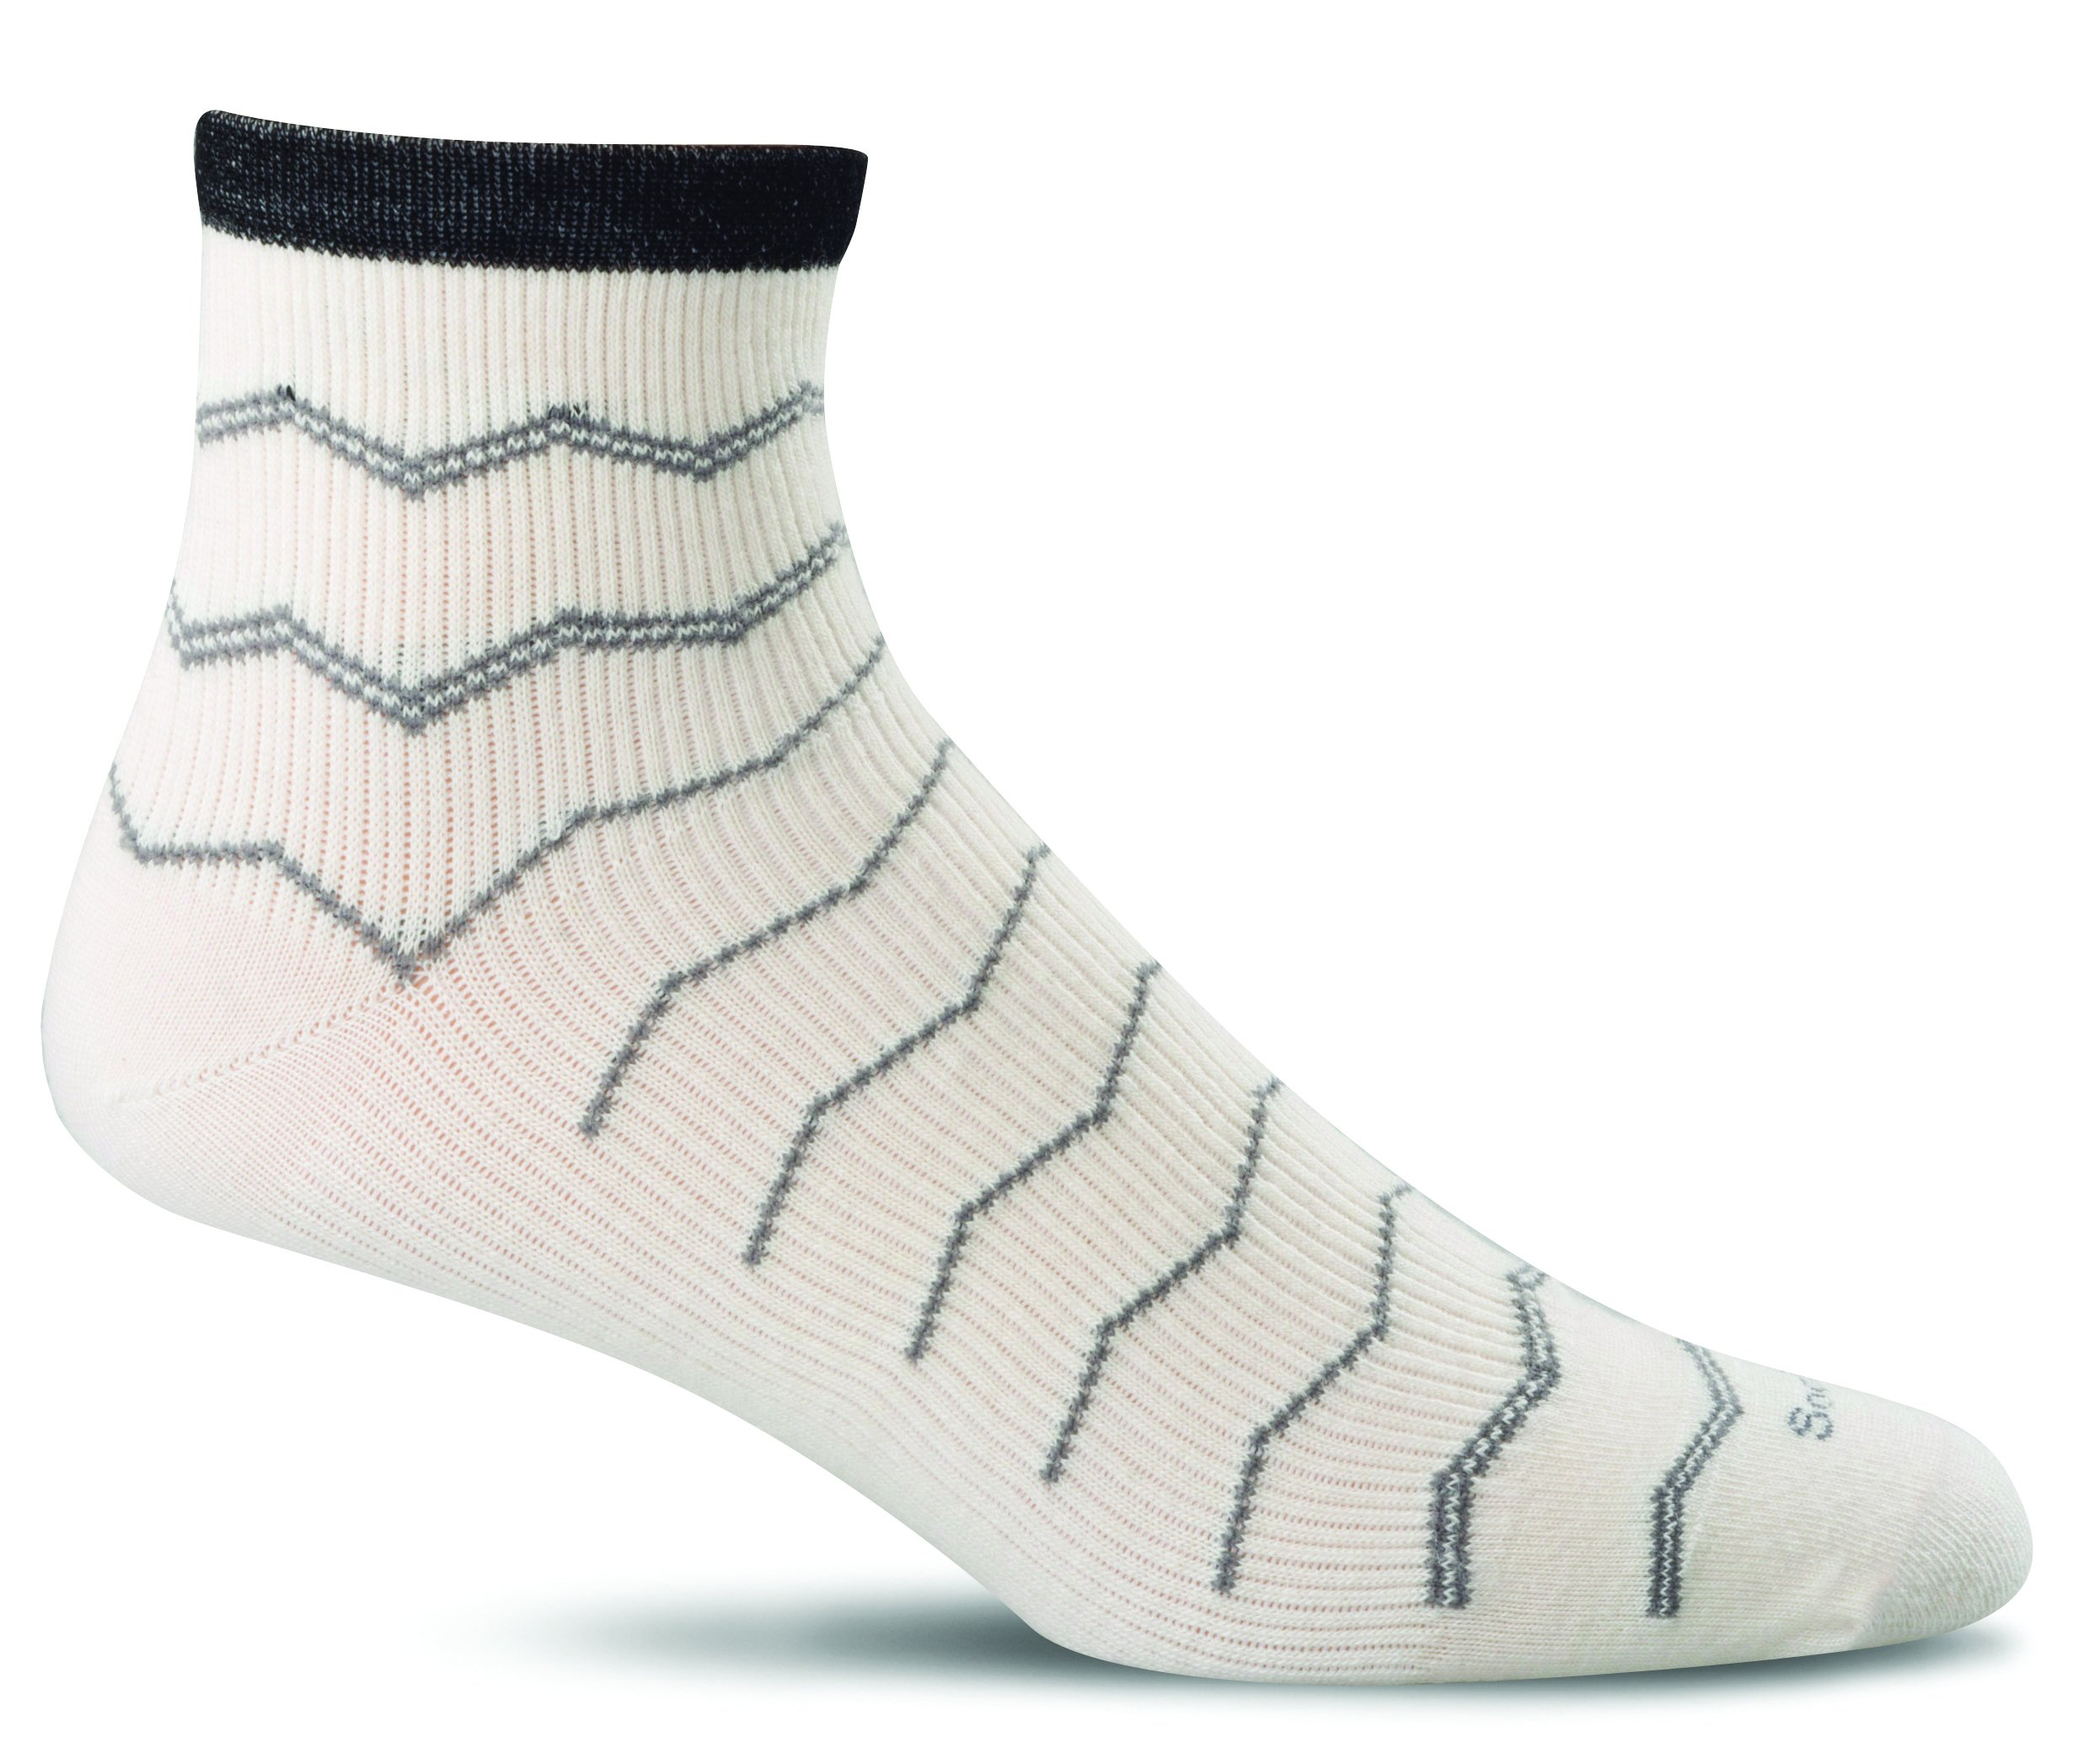 Sockwell Men's Plantar Fasciitis Firm Compression Socks, Natural, Medium/Large